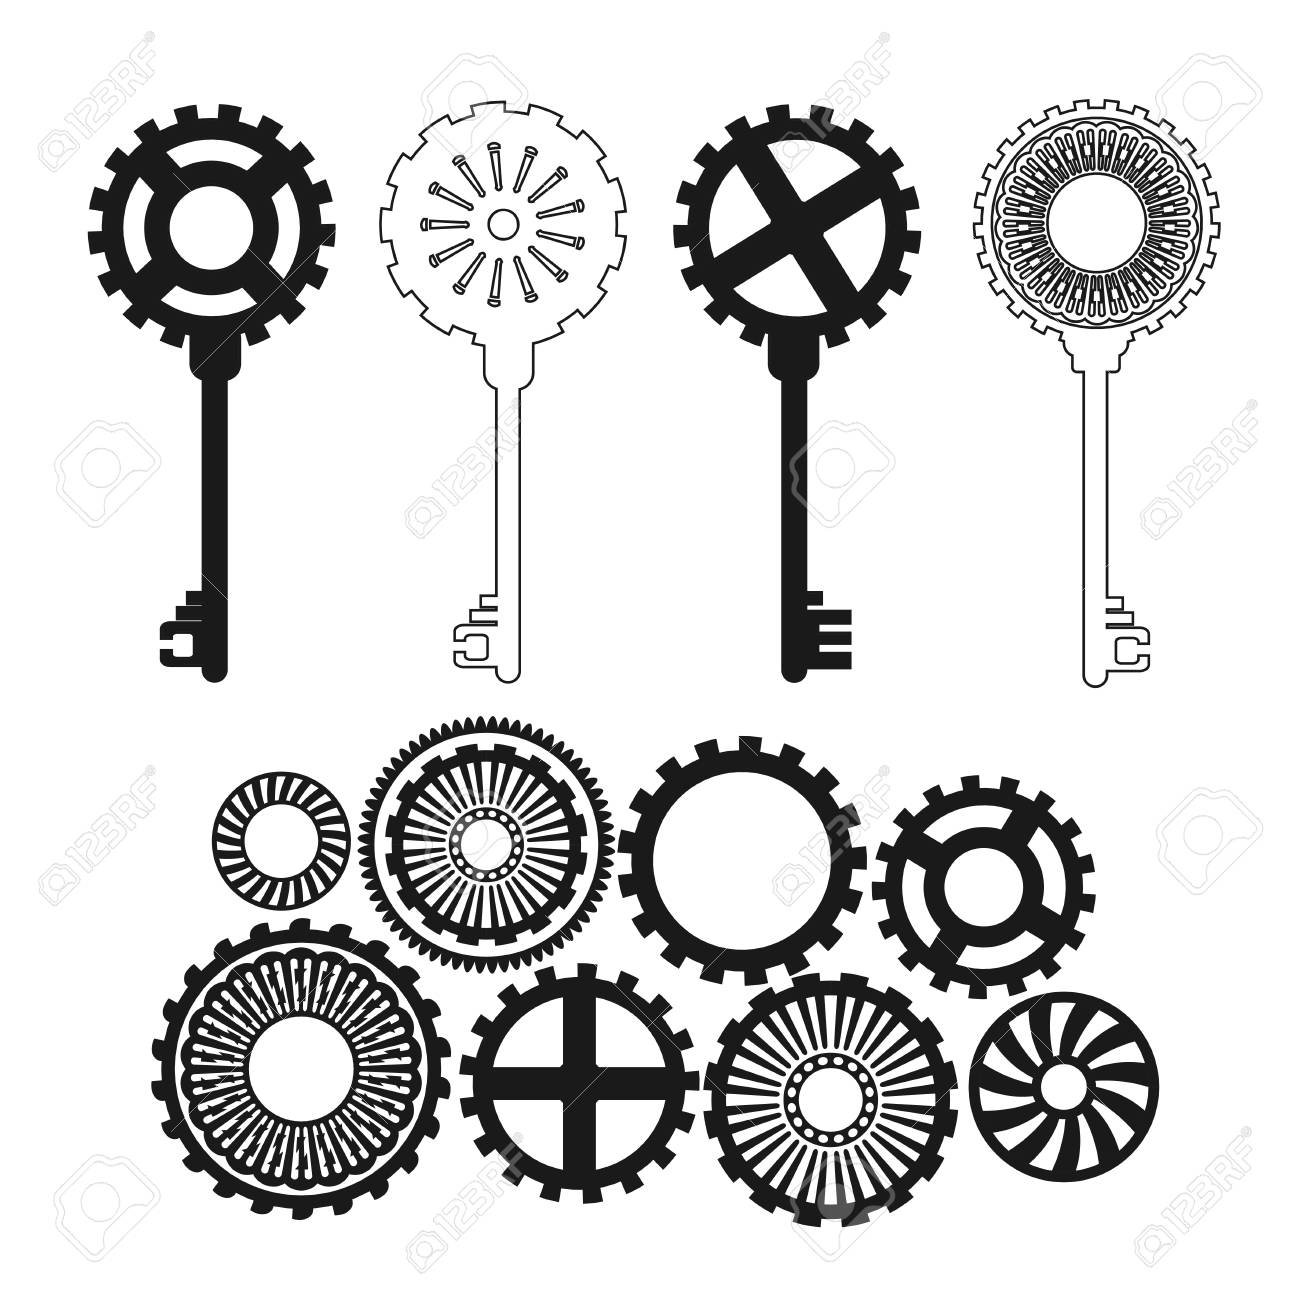 vector key in ste unk style fantastic gears royalty free  vector key in ste unk style fantastic gears stock vector 95438728